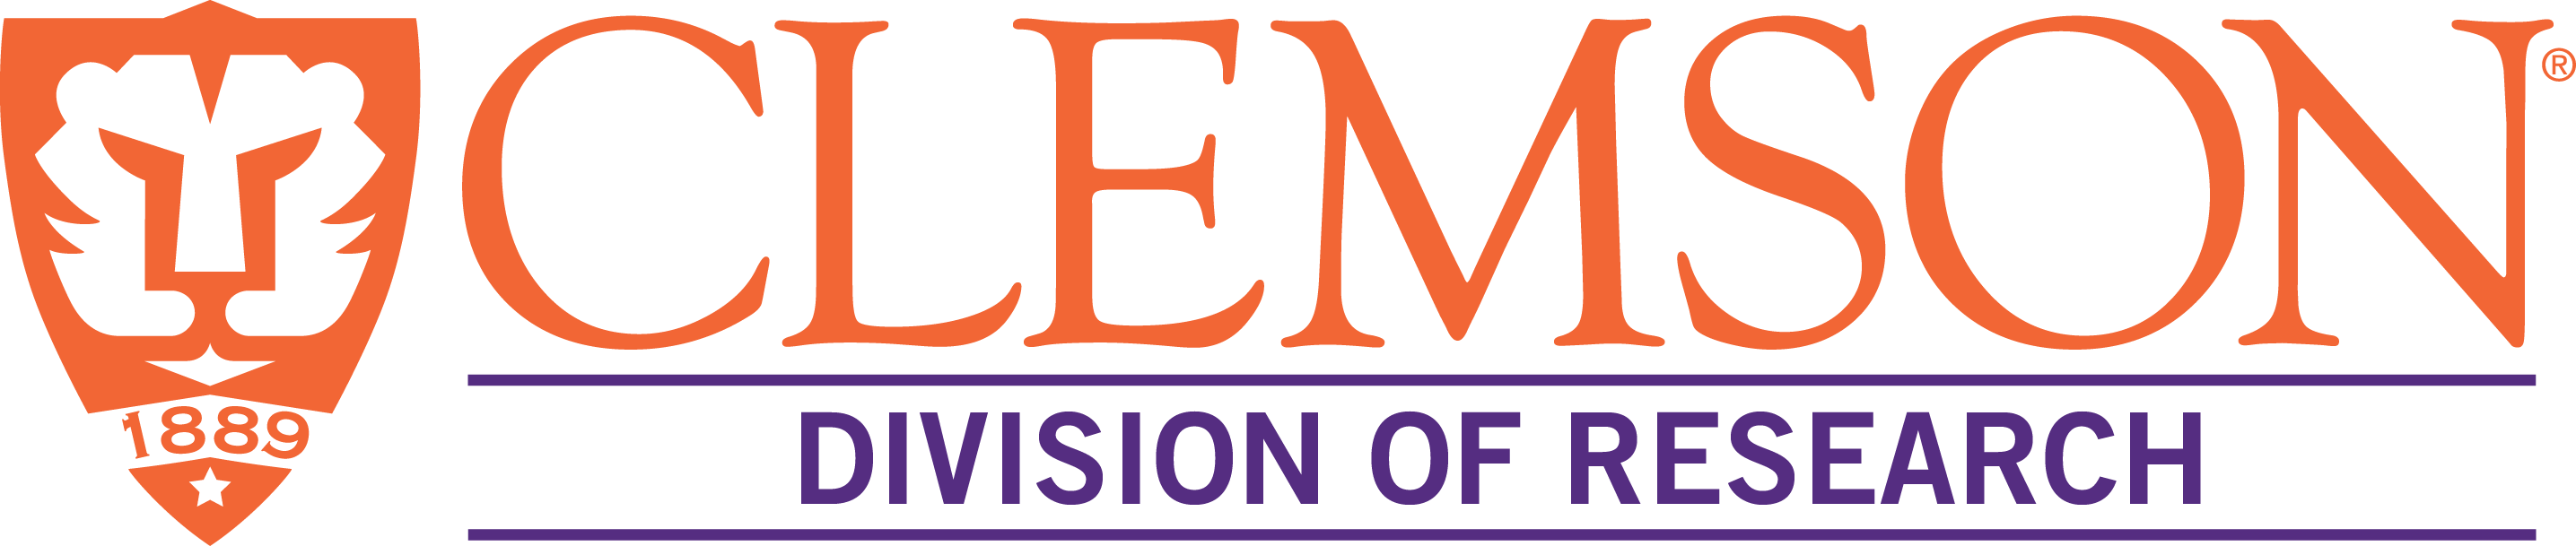 Clemson Division of Research